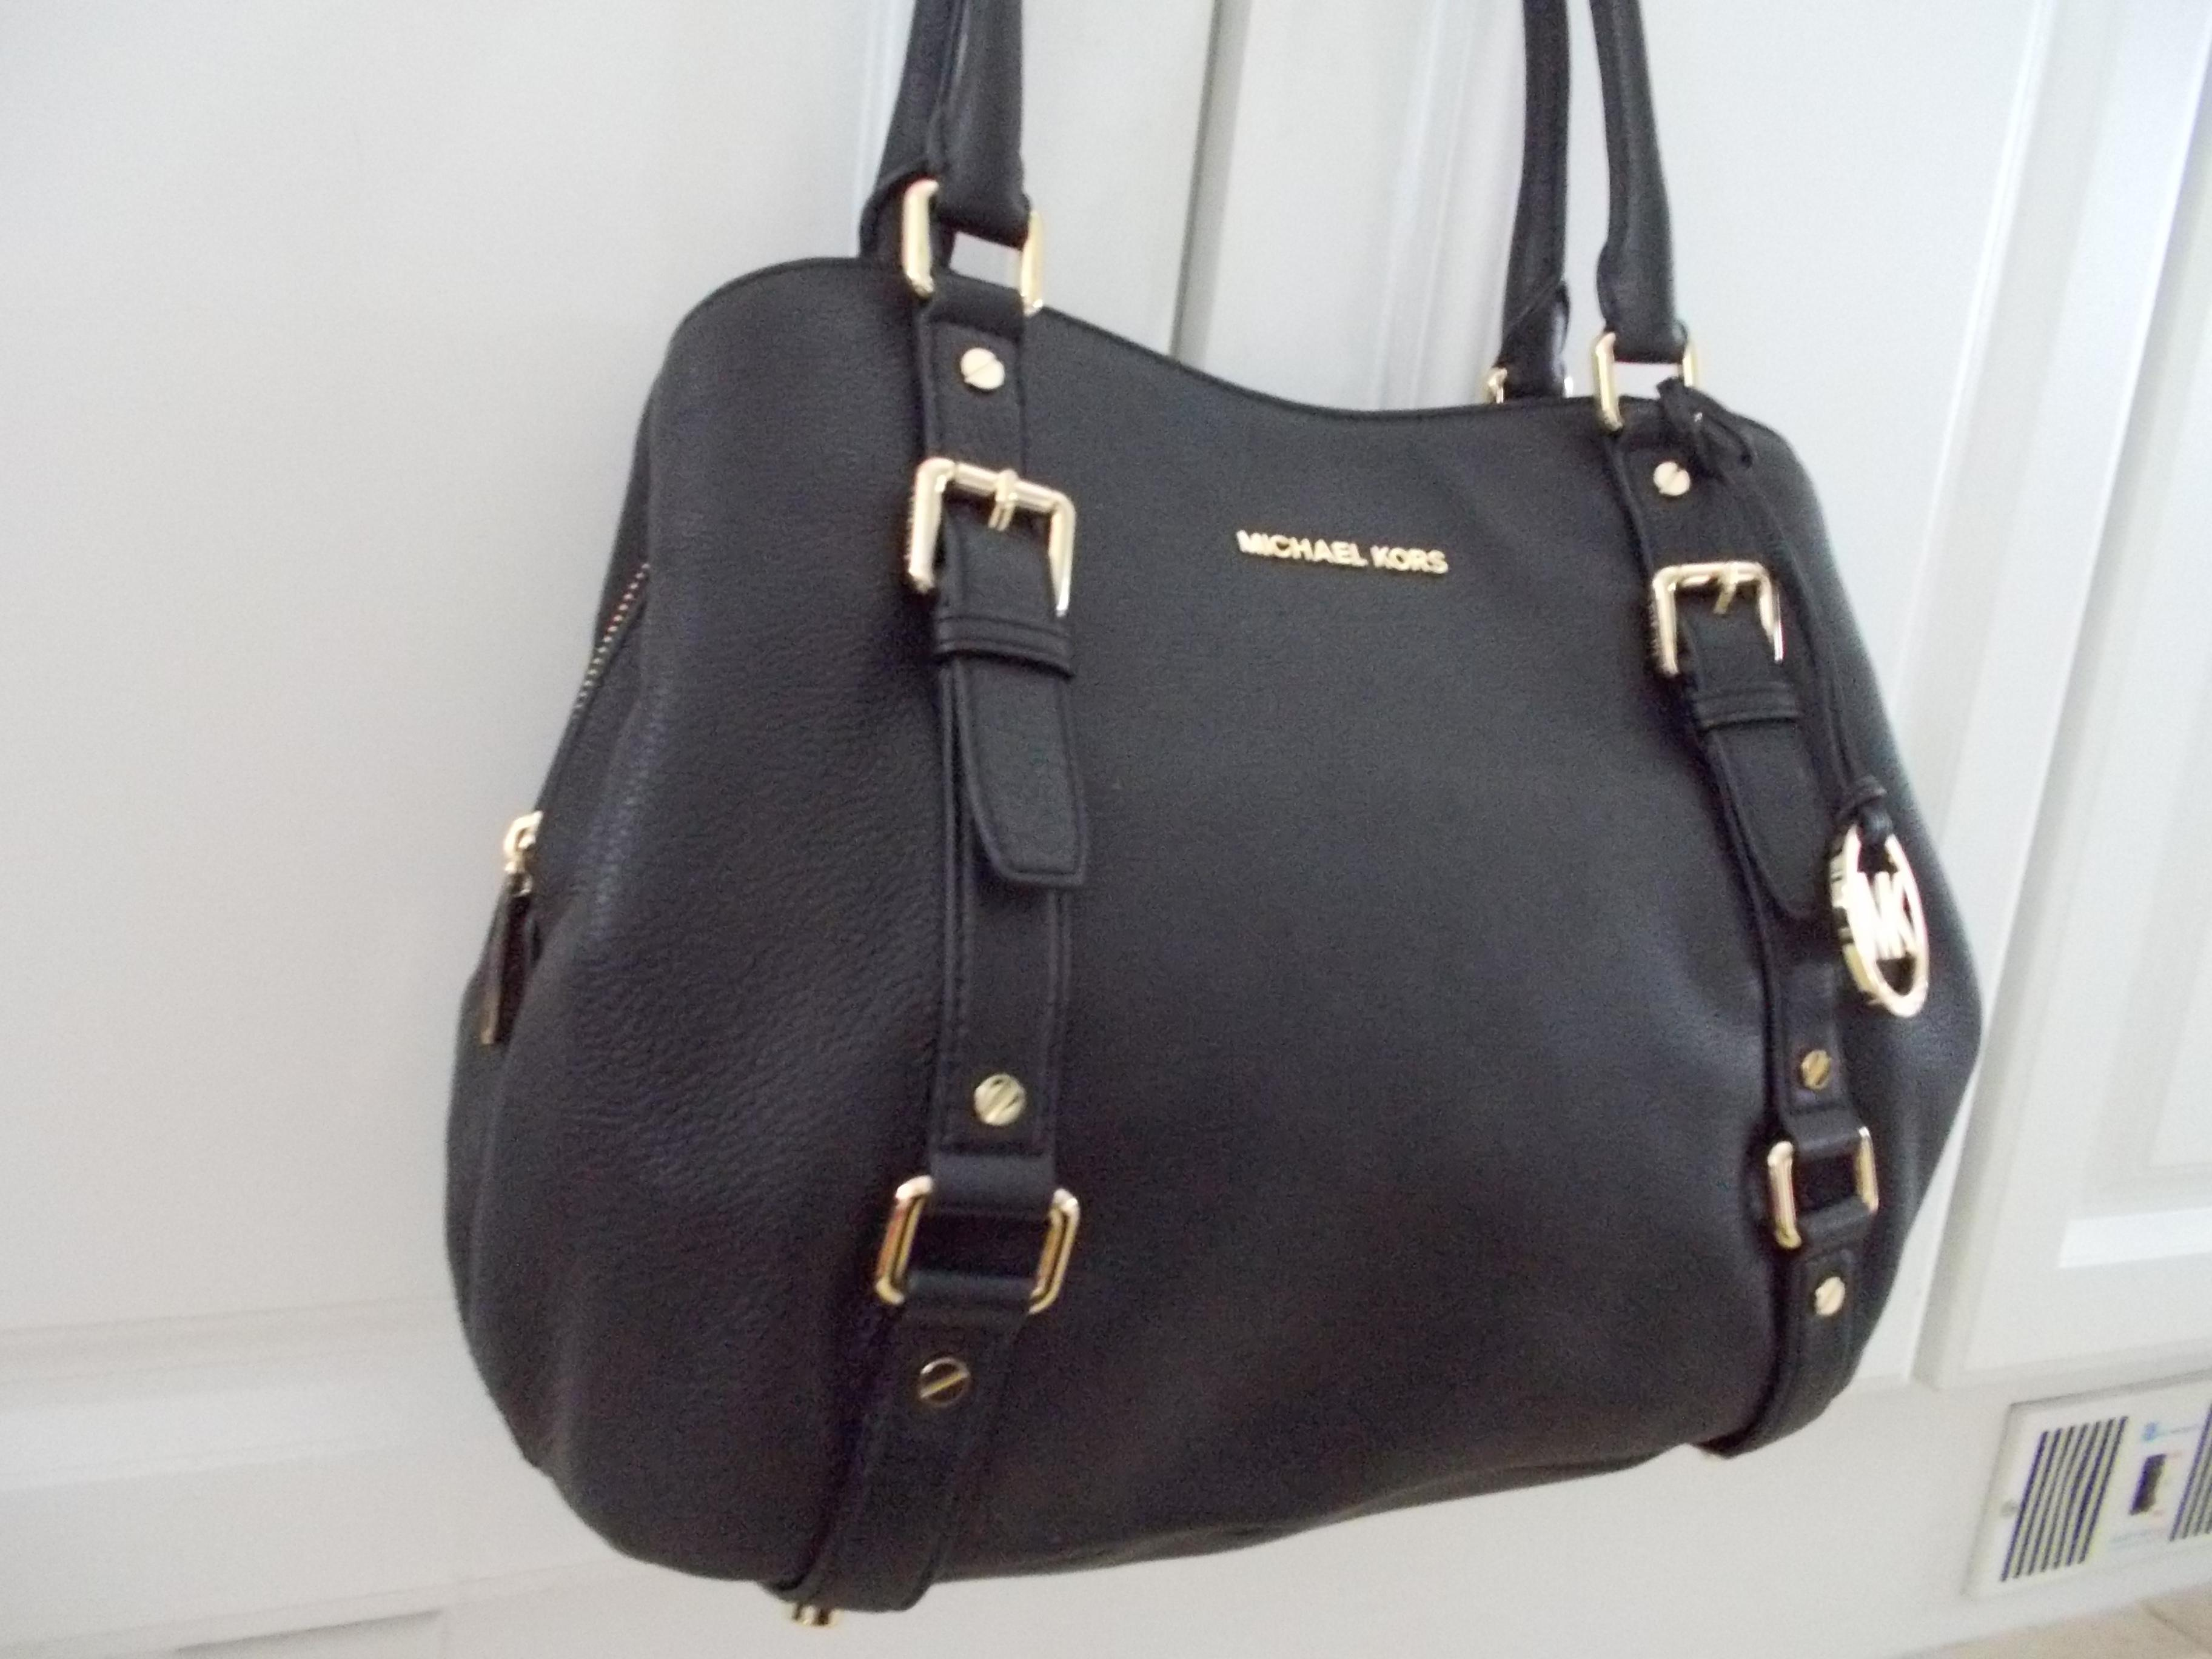 ... new zealand michael kors large bedford black leather shoulder bag  tradesy 51ea4 a1590 ... 712ddc68df633